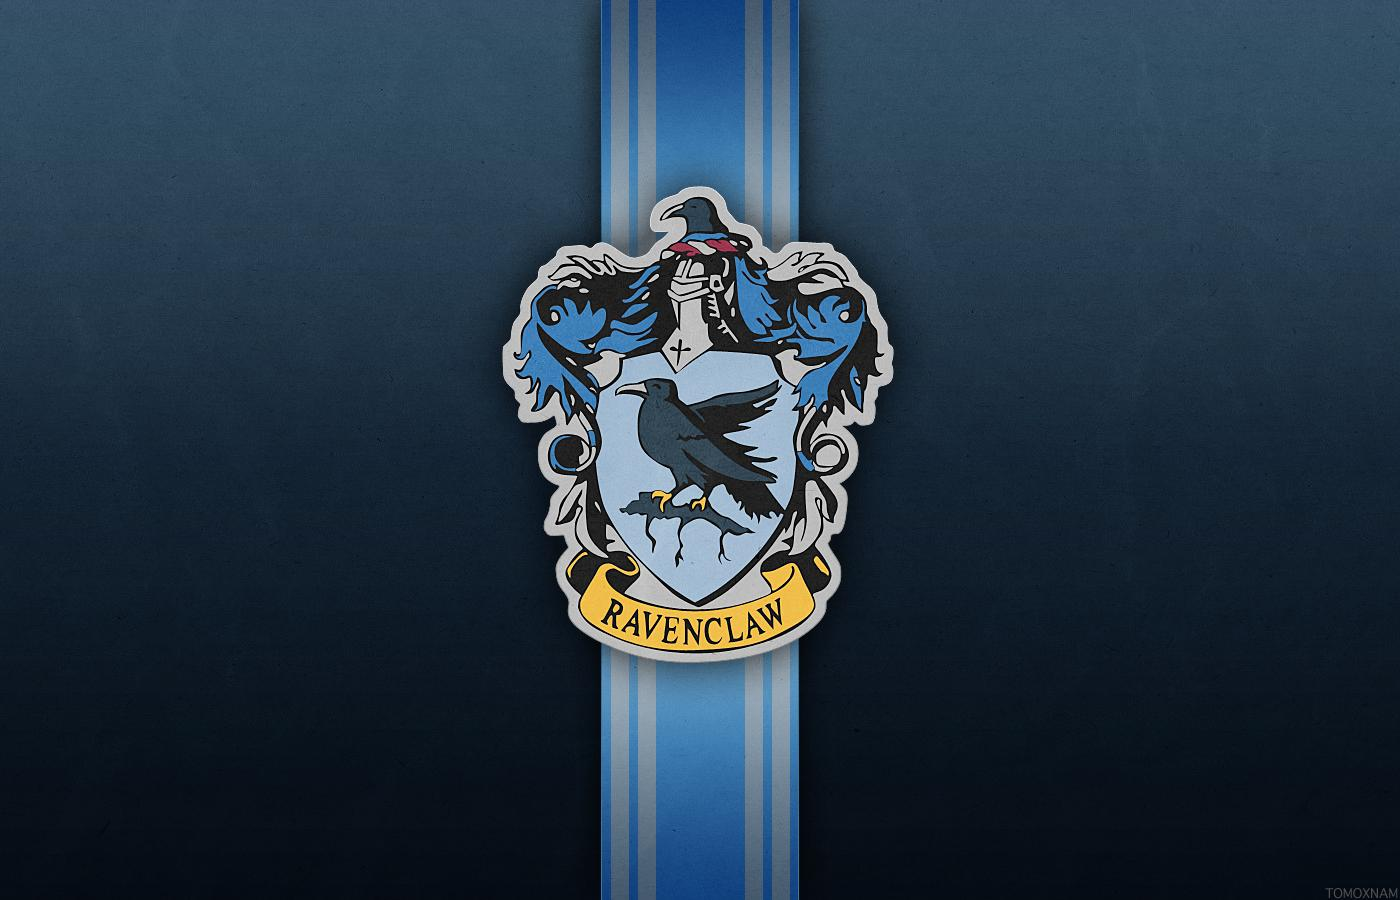 Ravenclaw Iphone Wallpaper